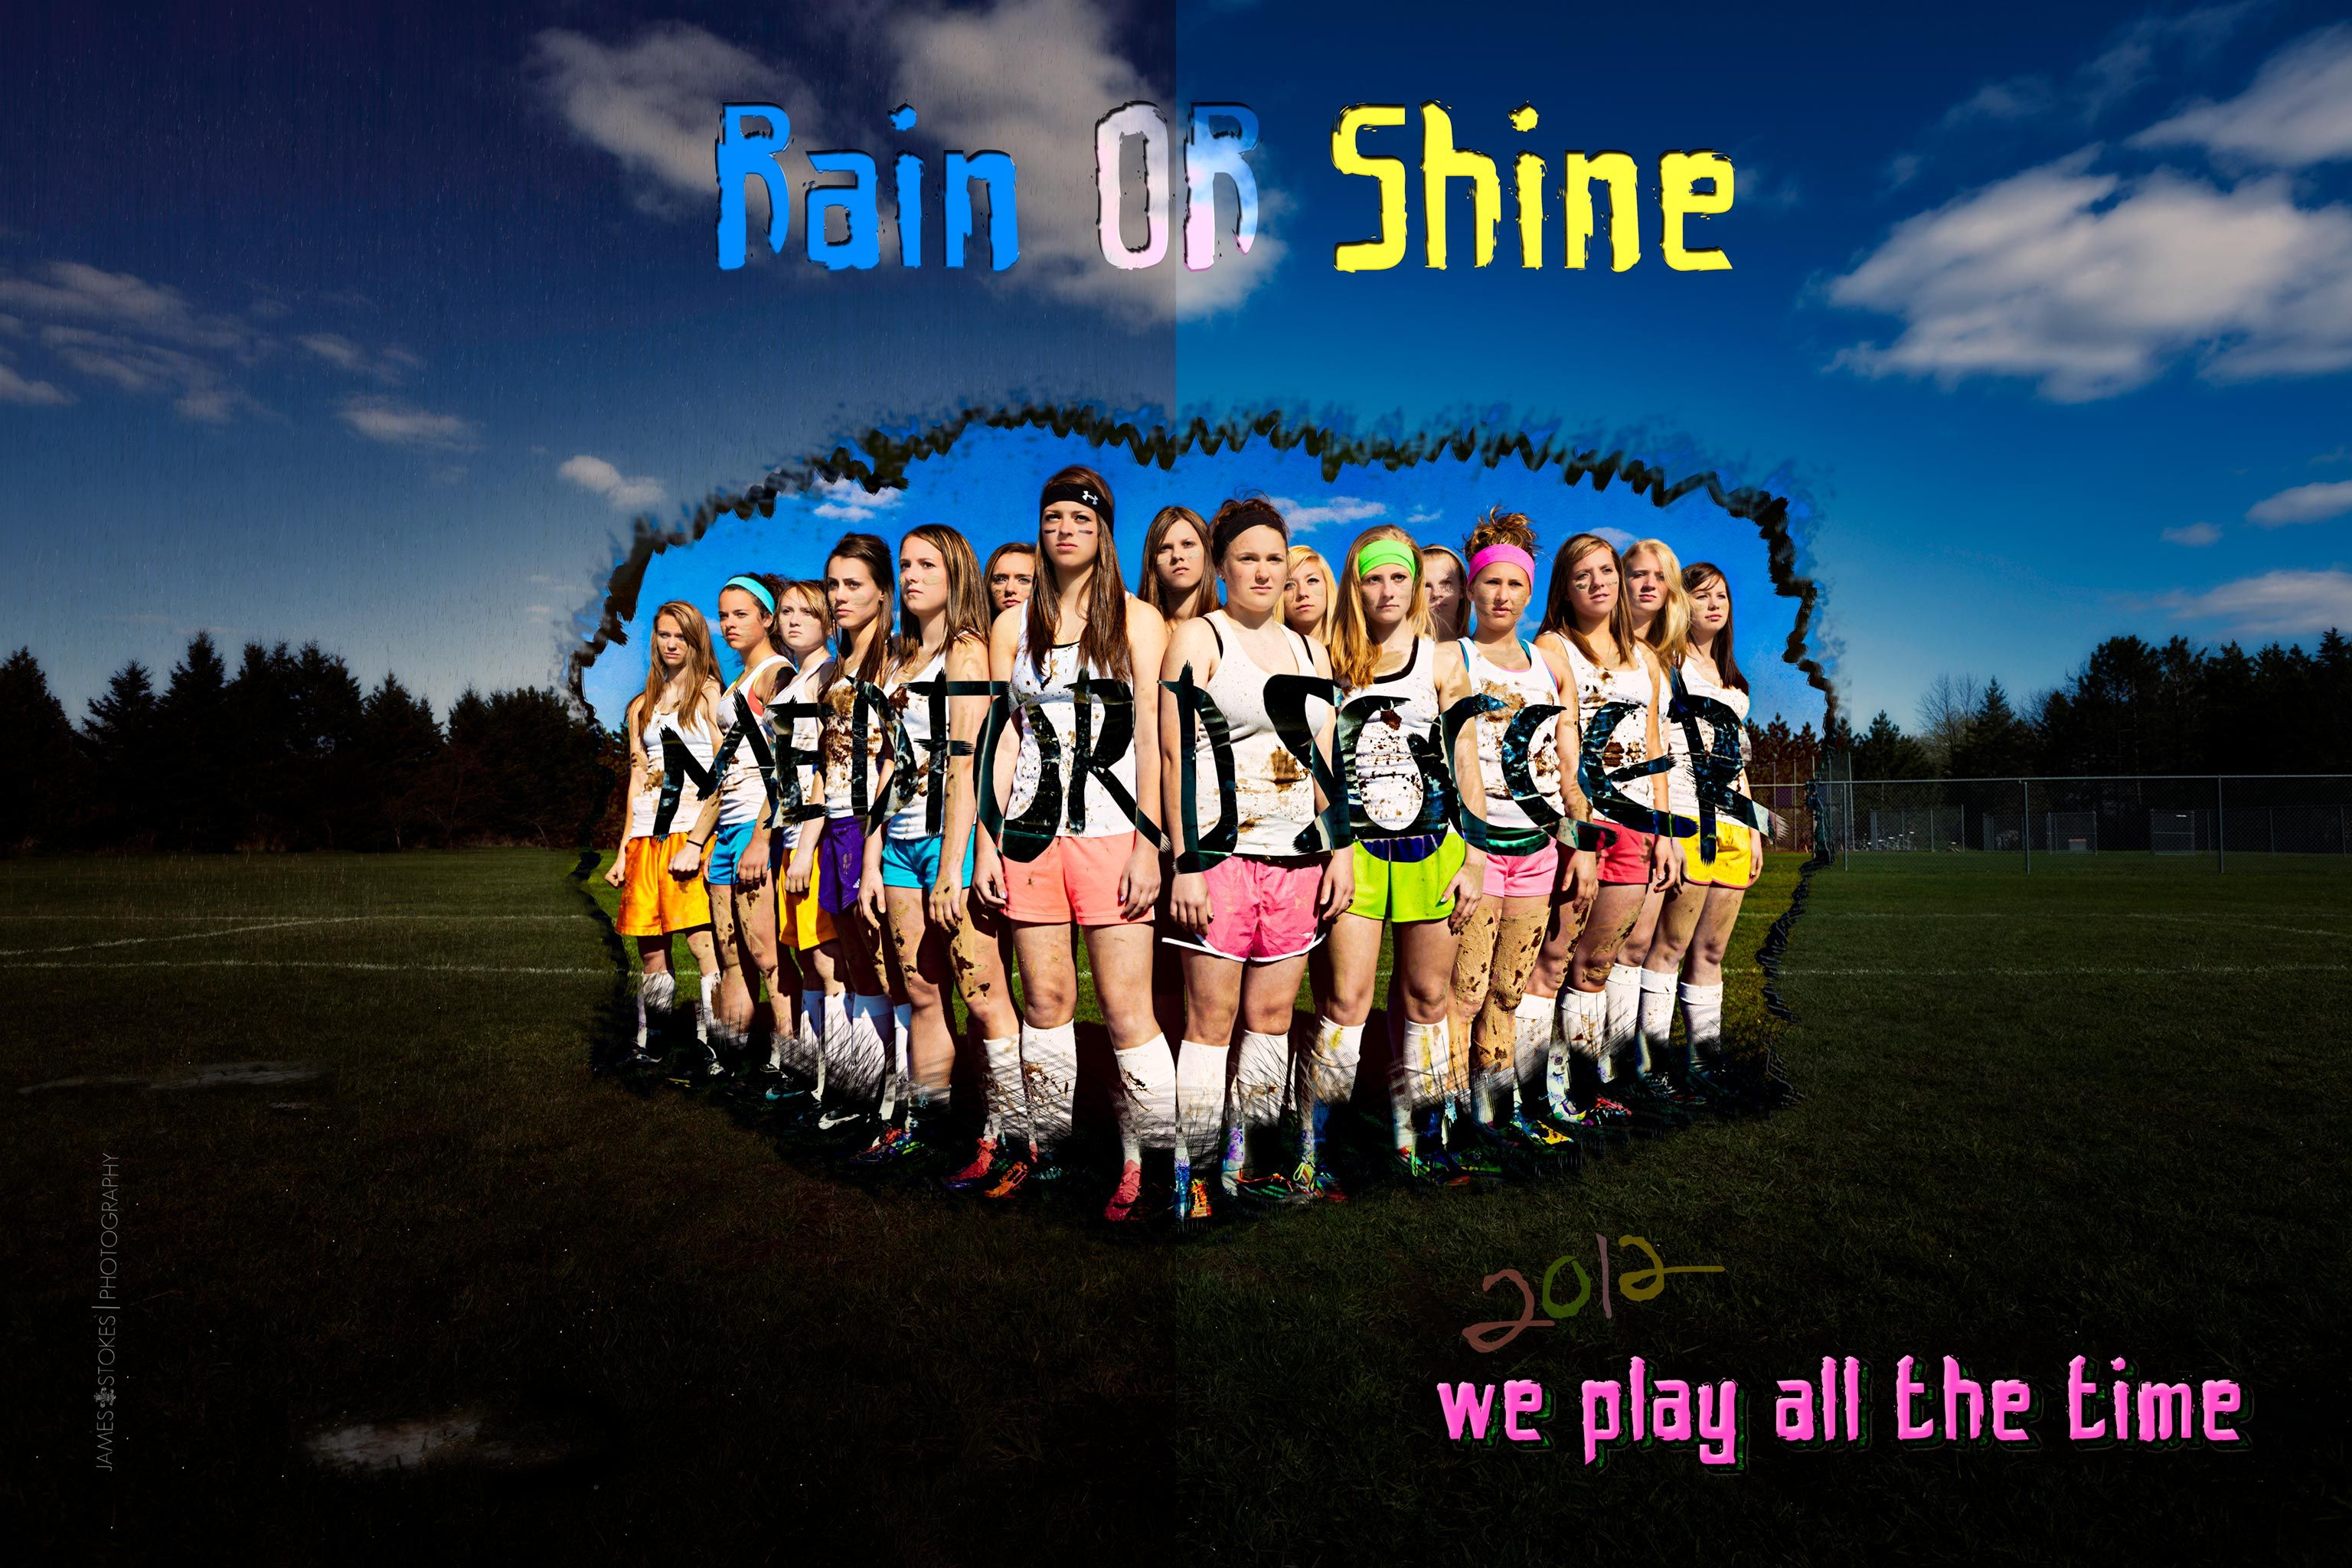 Sports Soccer Poster Ideas Inspired By Nike Ad Rain Or Shine Medford Team